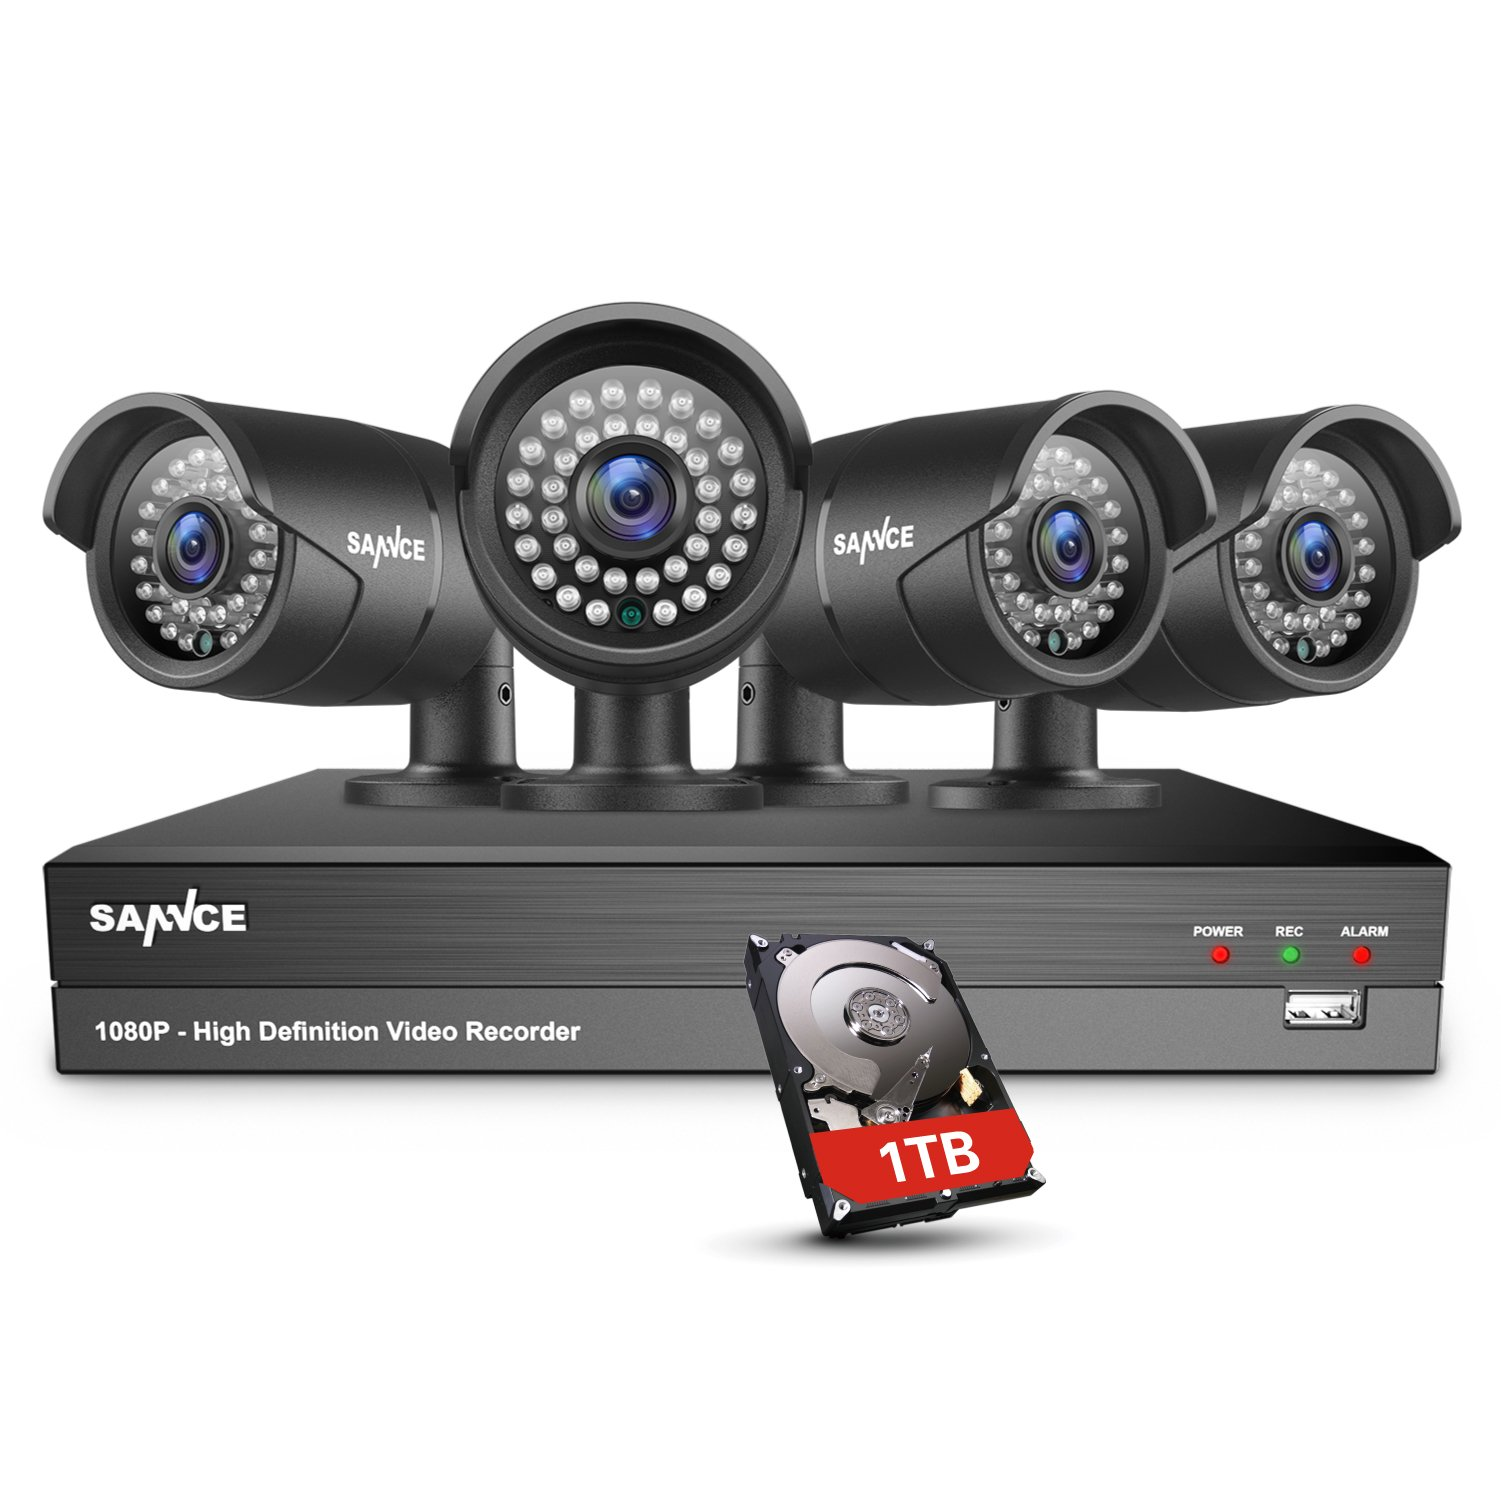 SANNCE 4CH 1080P Video DVR Recorder with 1TB Hard Drive and (4) HD 1080P Outdoor Security Cameras, with Superior Night Vision, IP66 Weatherproof Housing